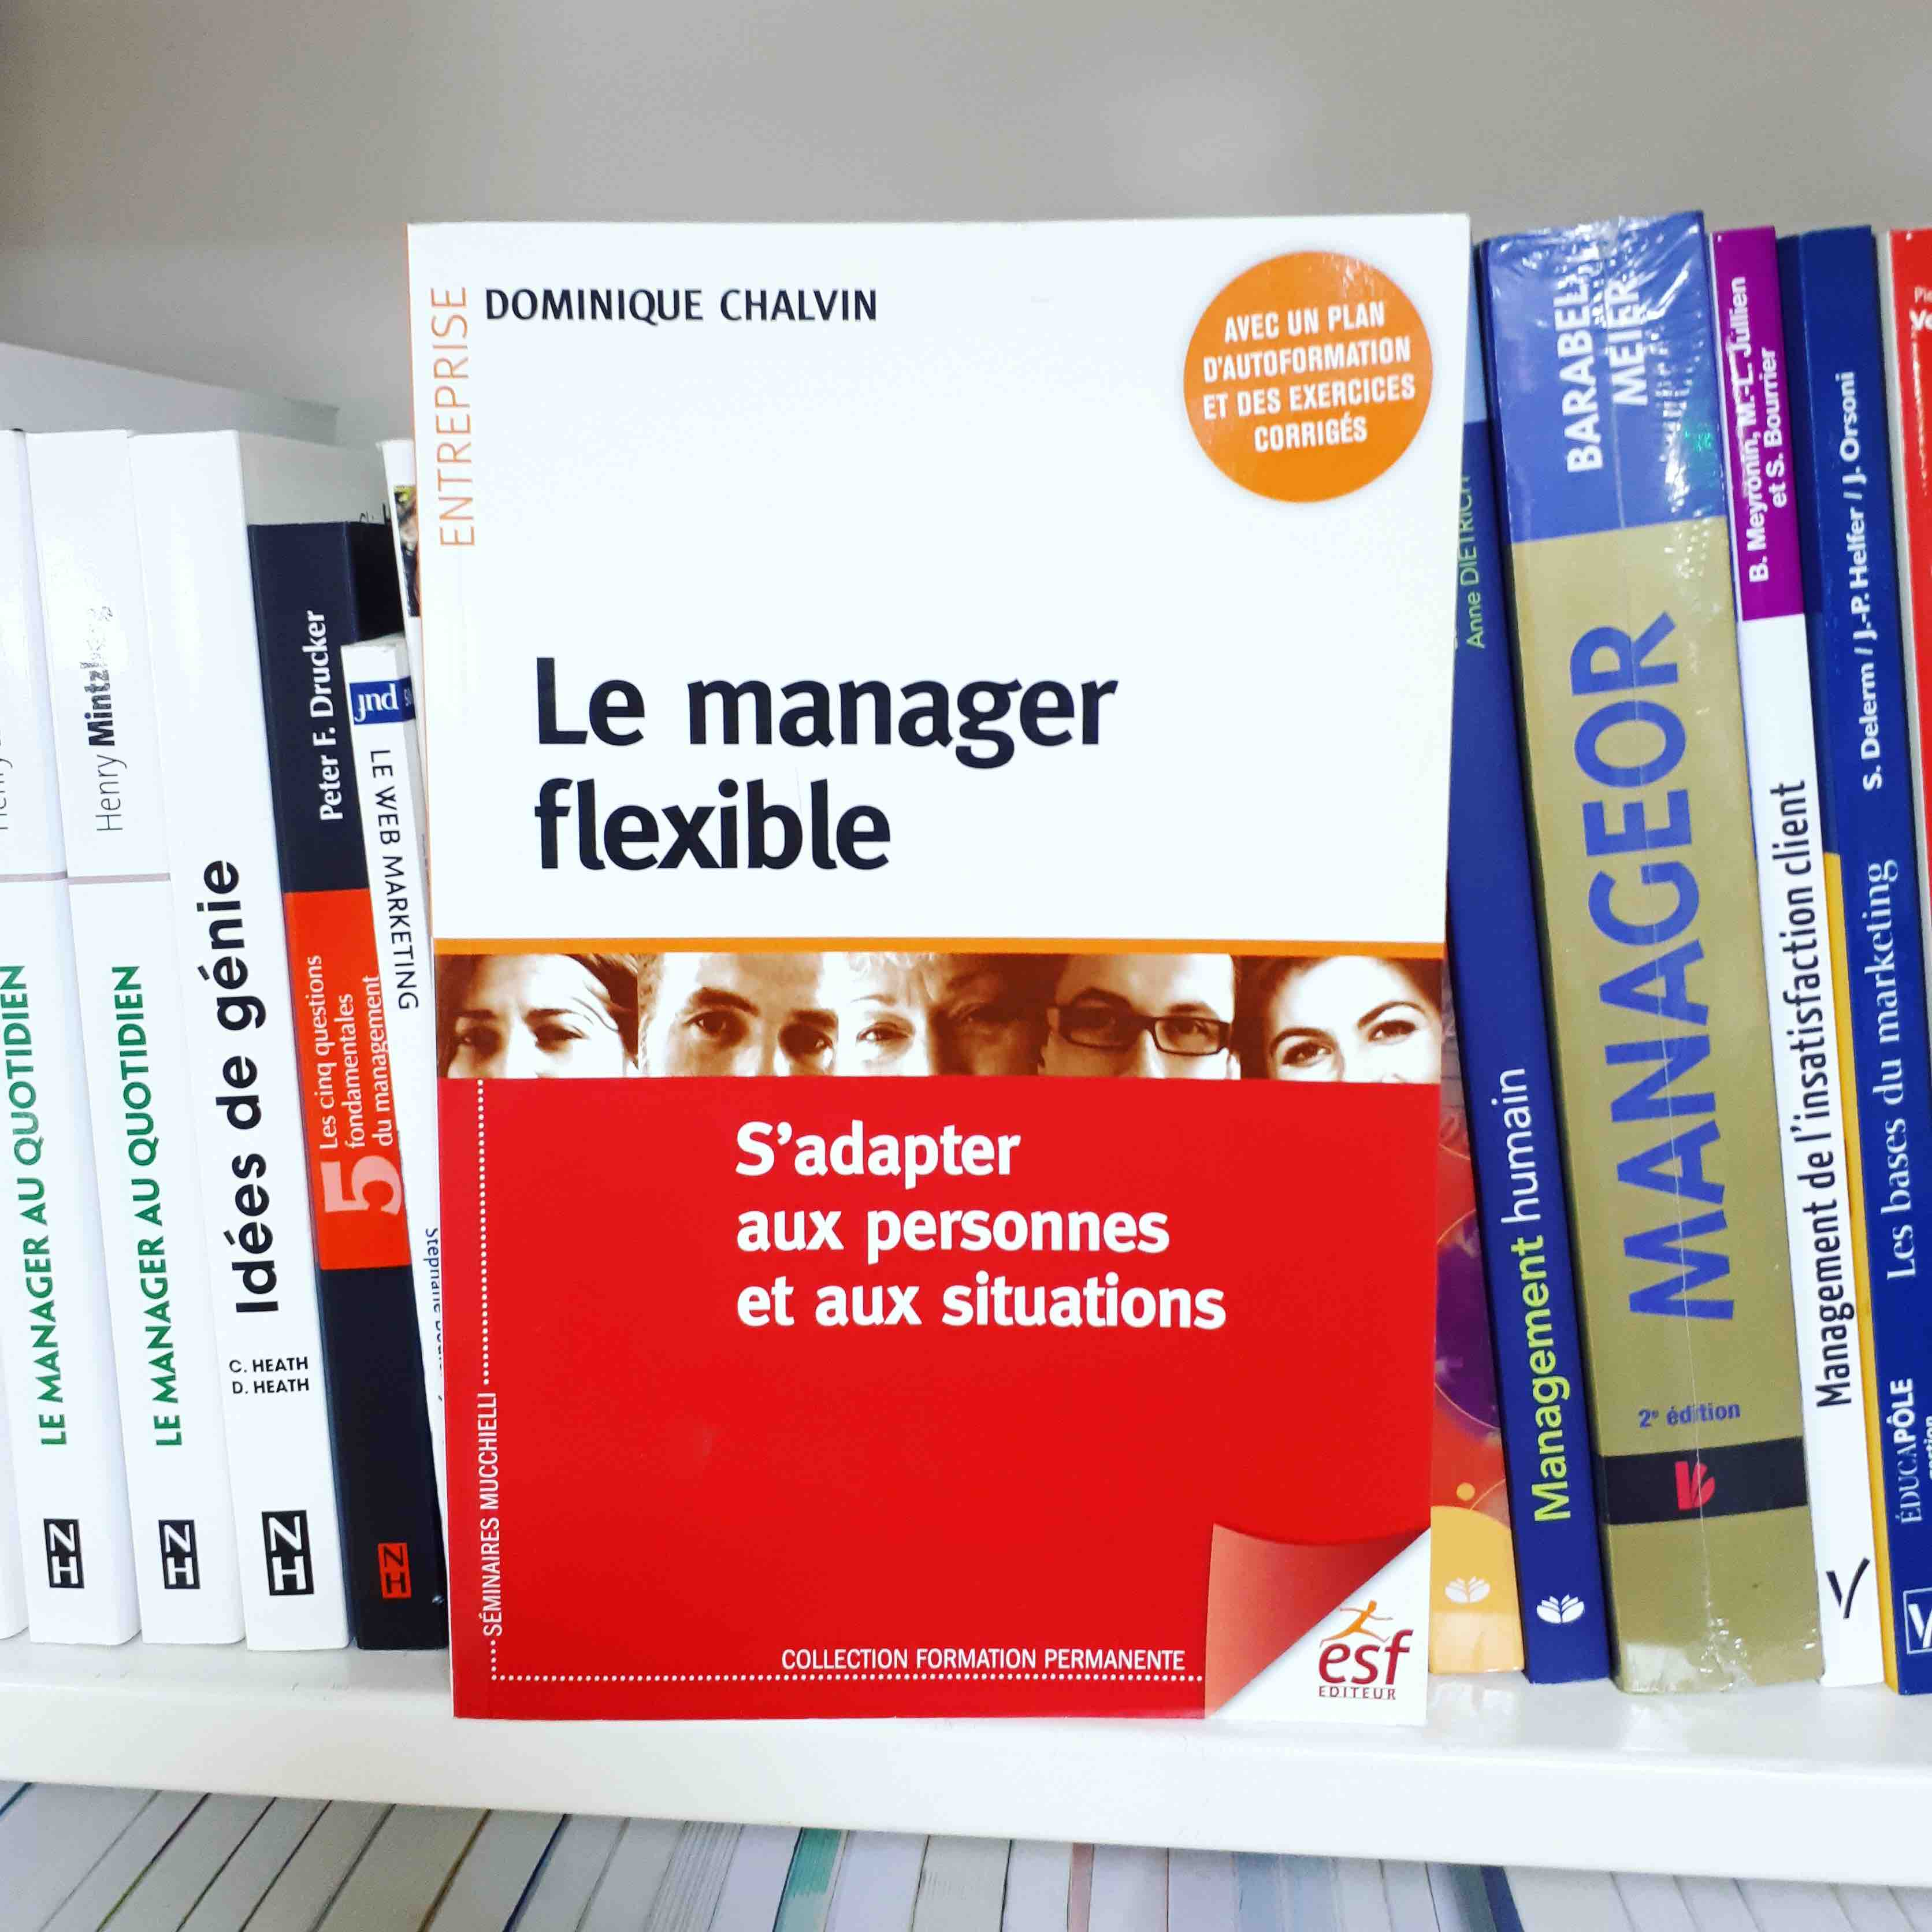 Le manager flexible